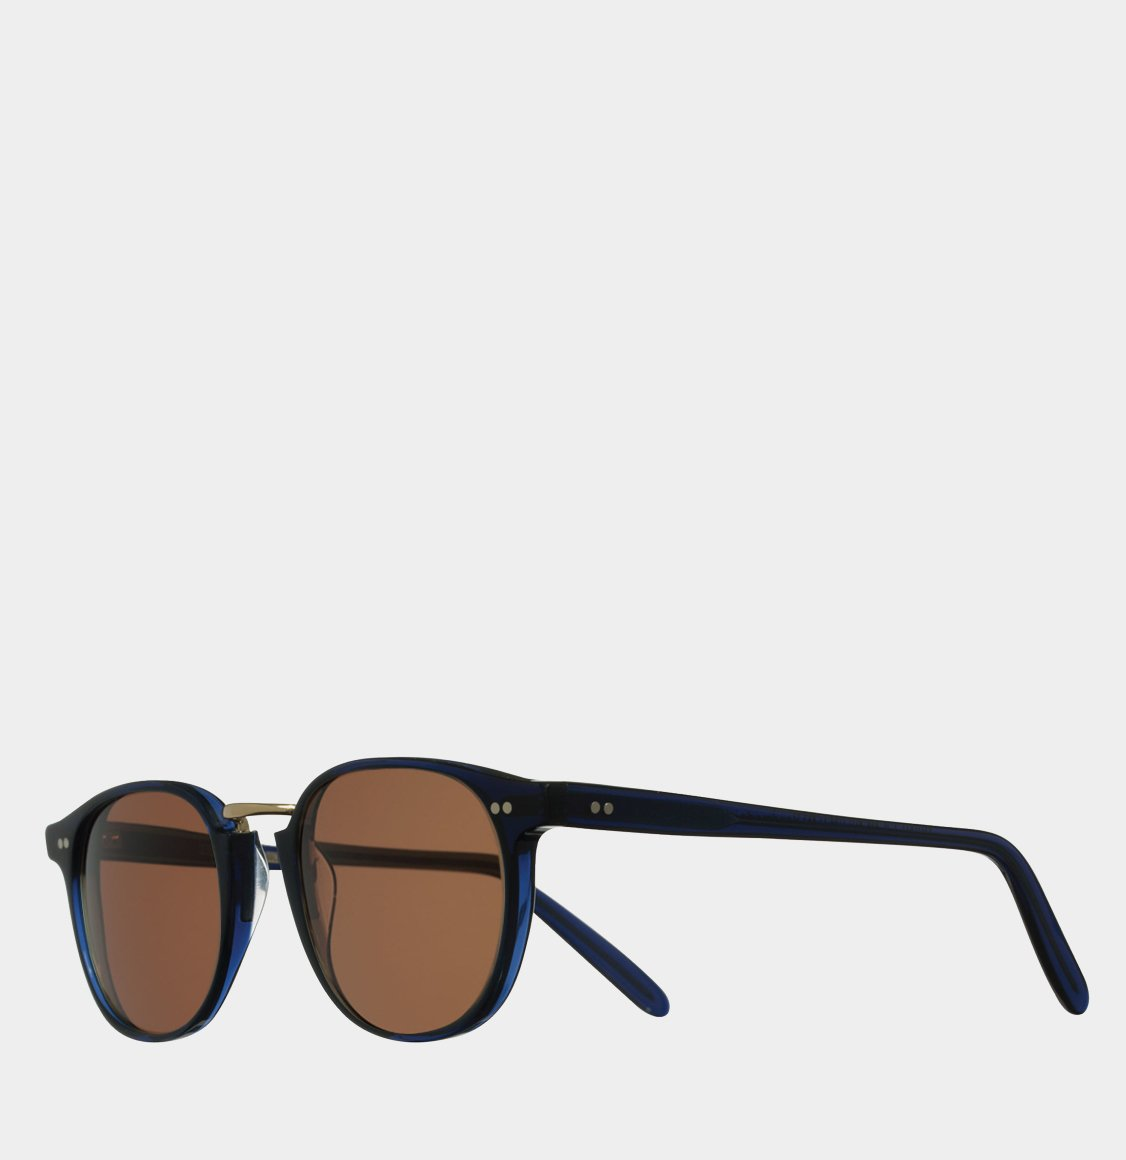 Cutler and Gross 1007 Round-Frame Classic Navy Blue Acetate 50 Γυαλιά Ηλίου